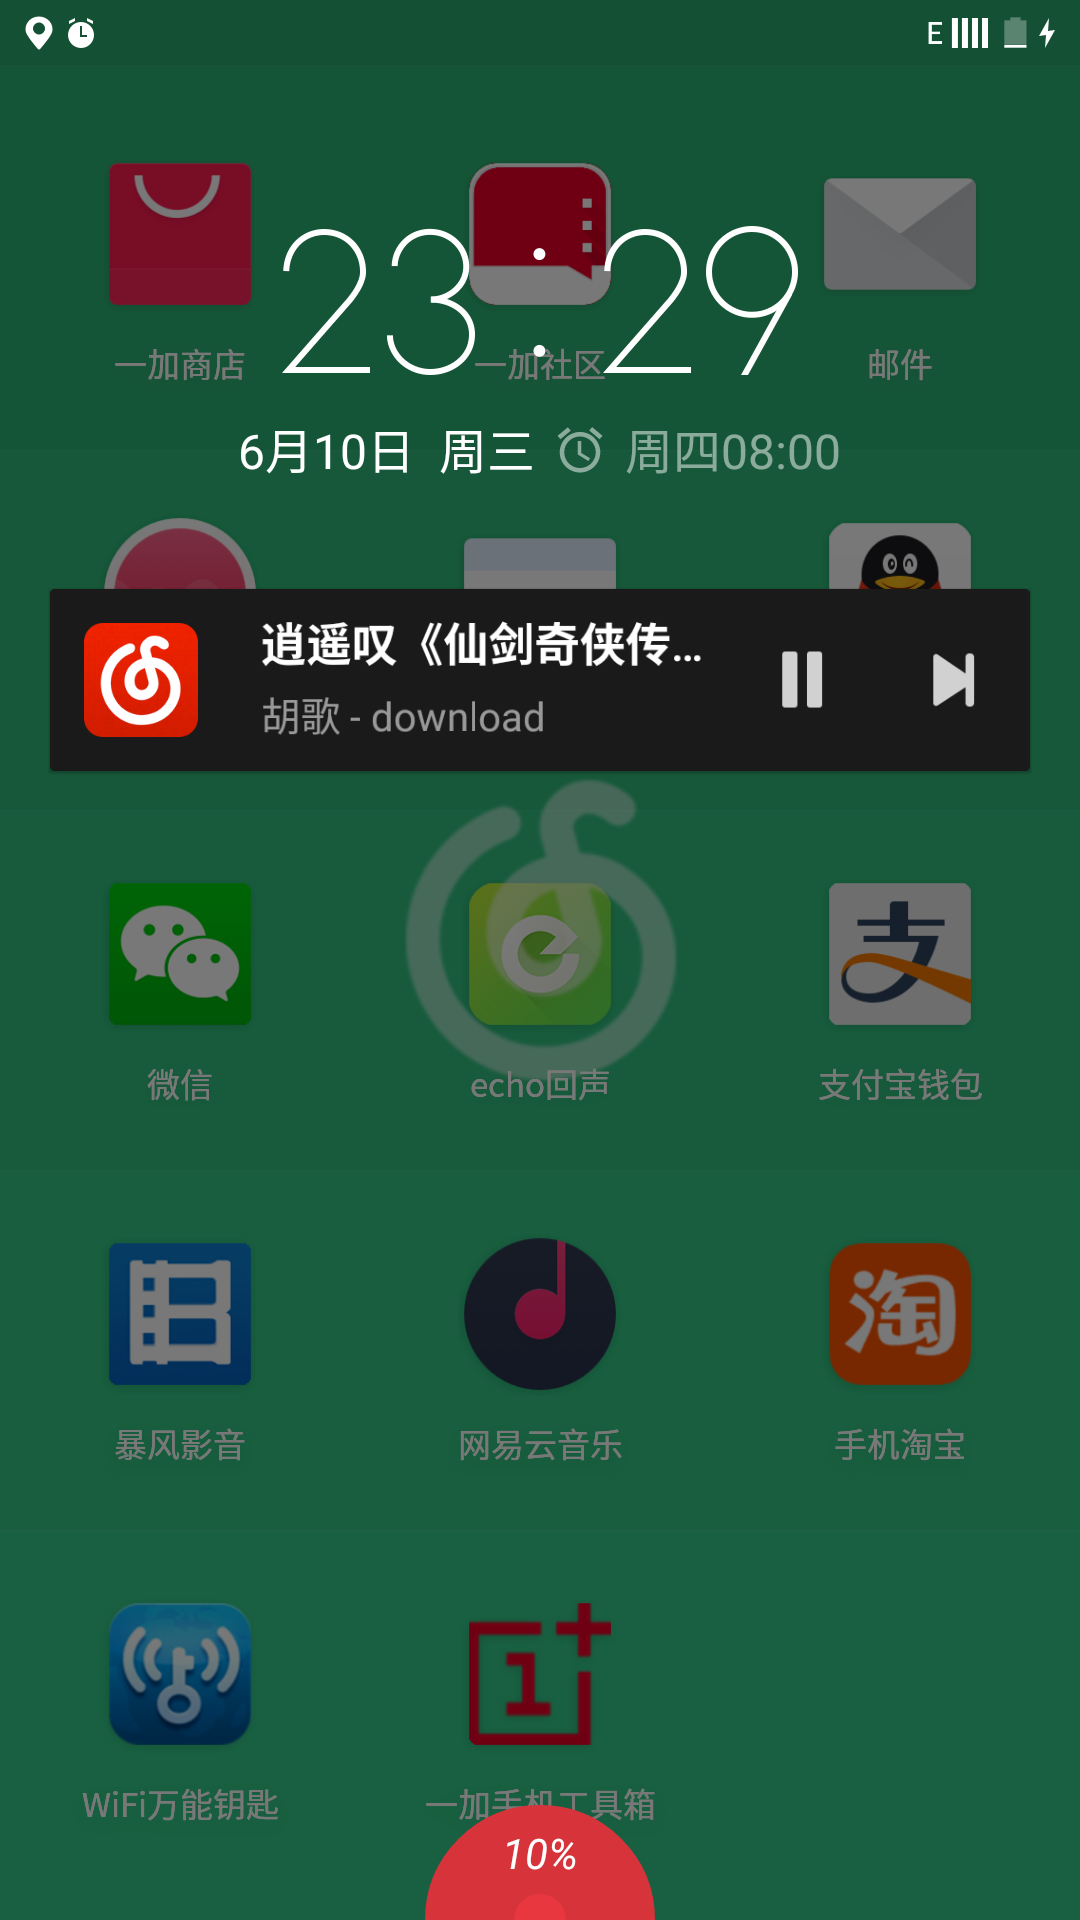 Screenshot_2015-06-10-23-29-05.png